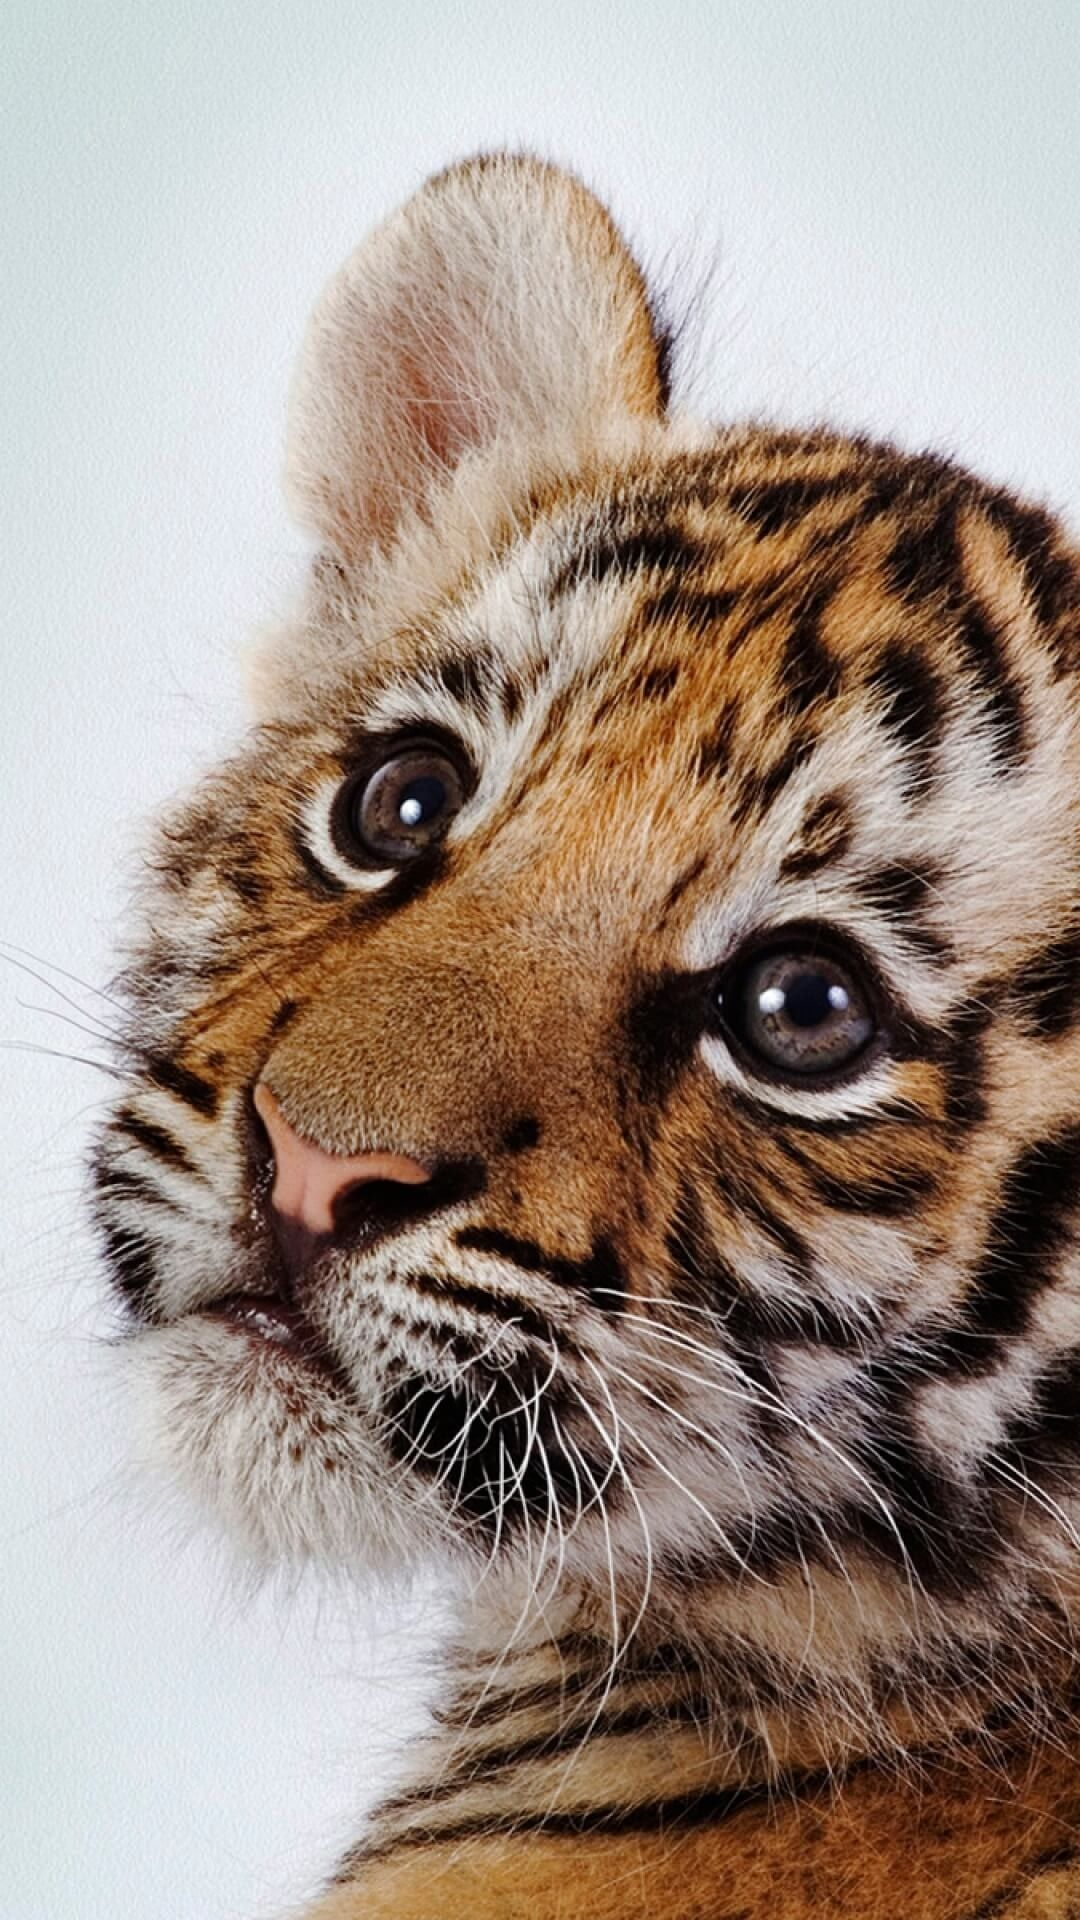 Black And White Tiger Hd Wallpaper Android Android Animalwallpaperiphonetiger Black Tig In 2020 Tiger Wallpaper Tiger Wallpaper Iphone Animal Wallpaper